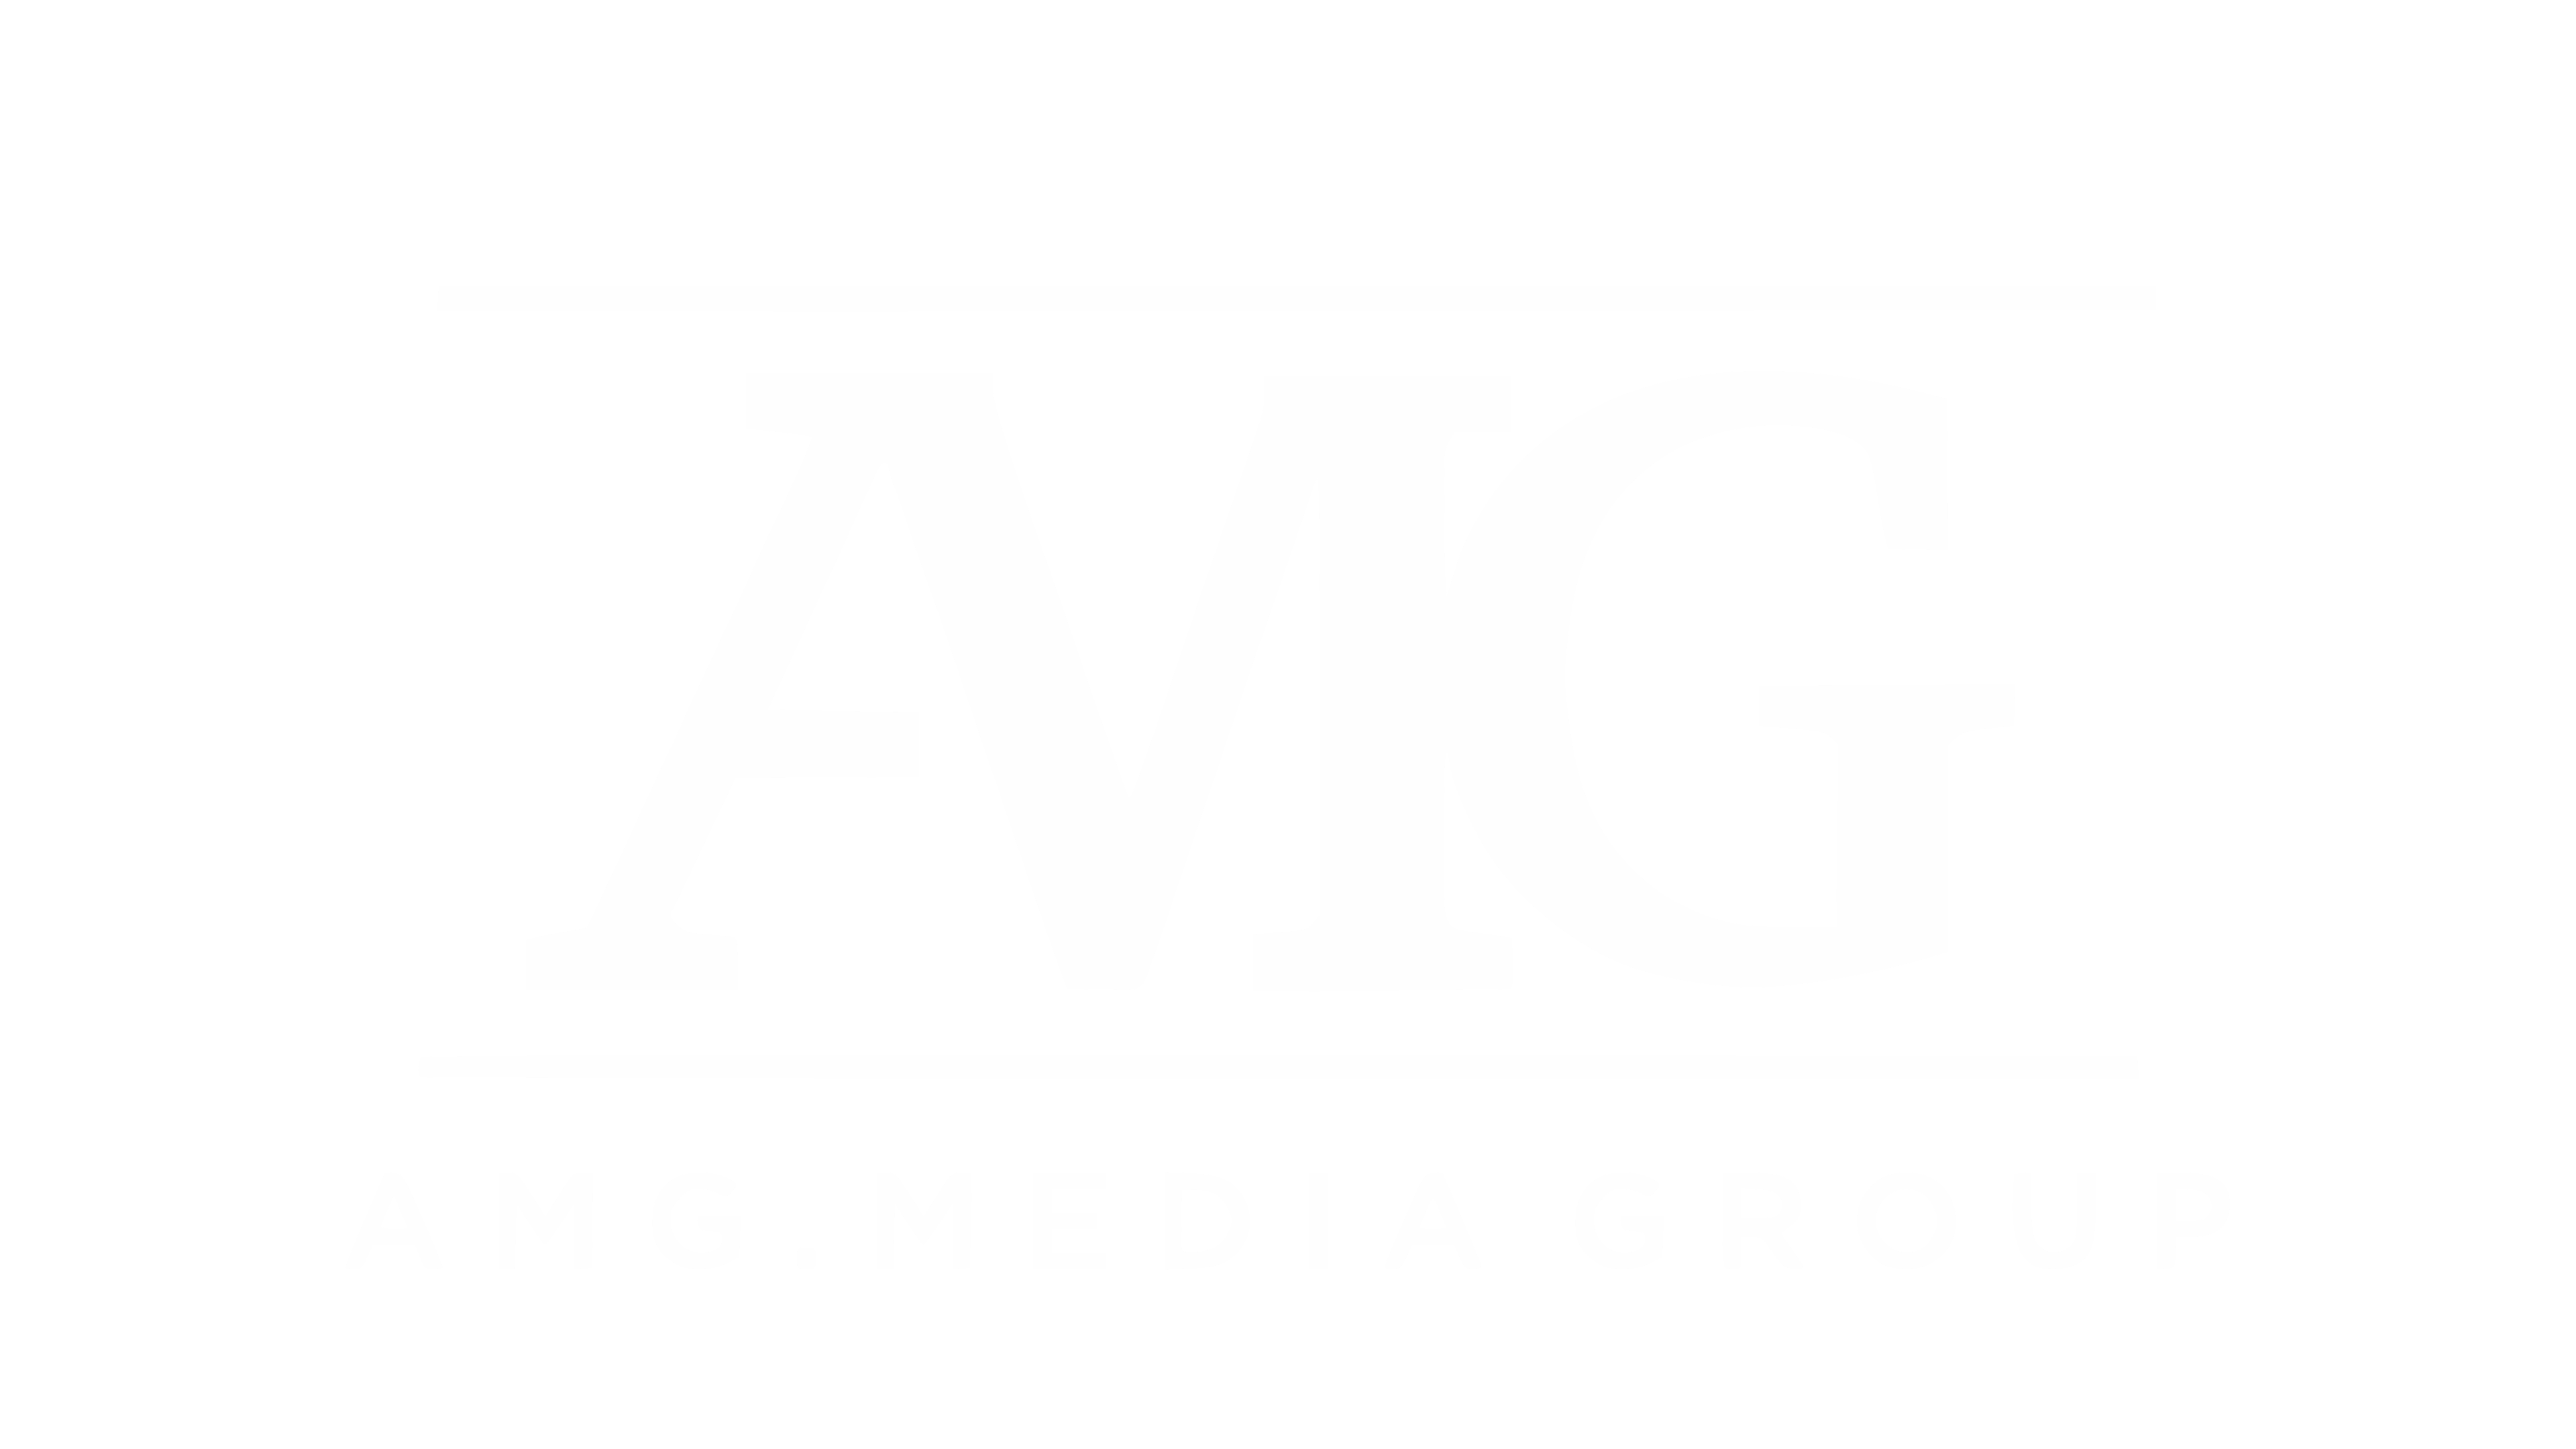 Archetype Media Group